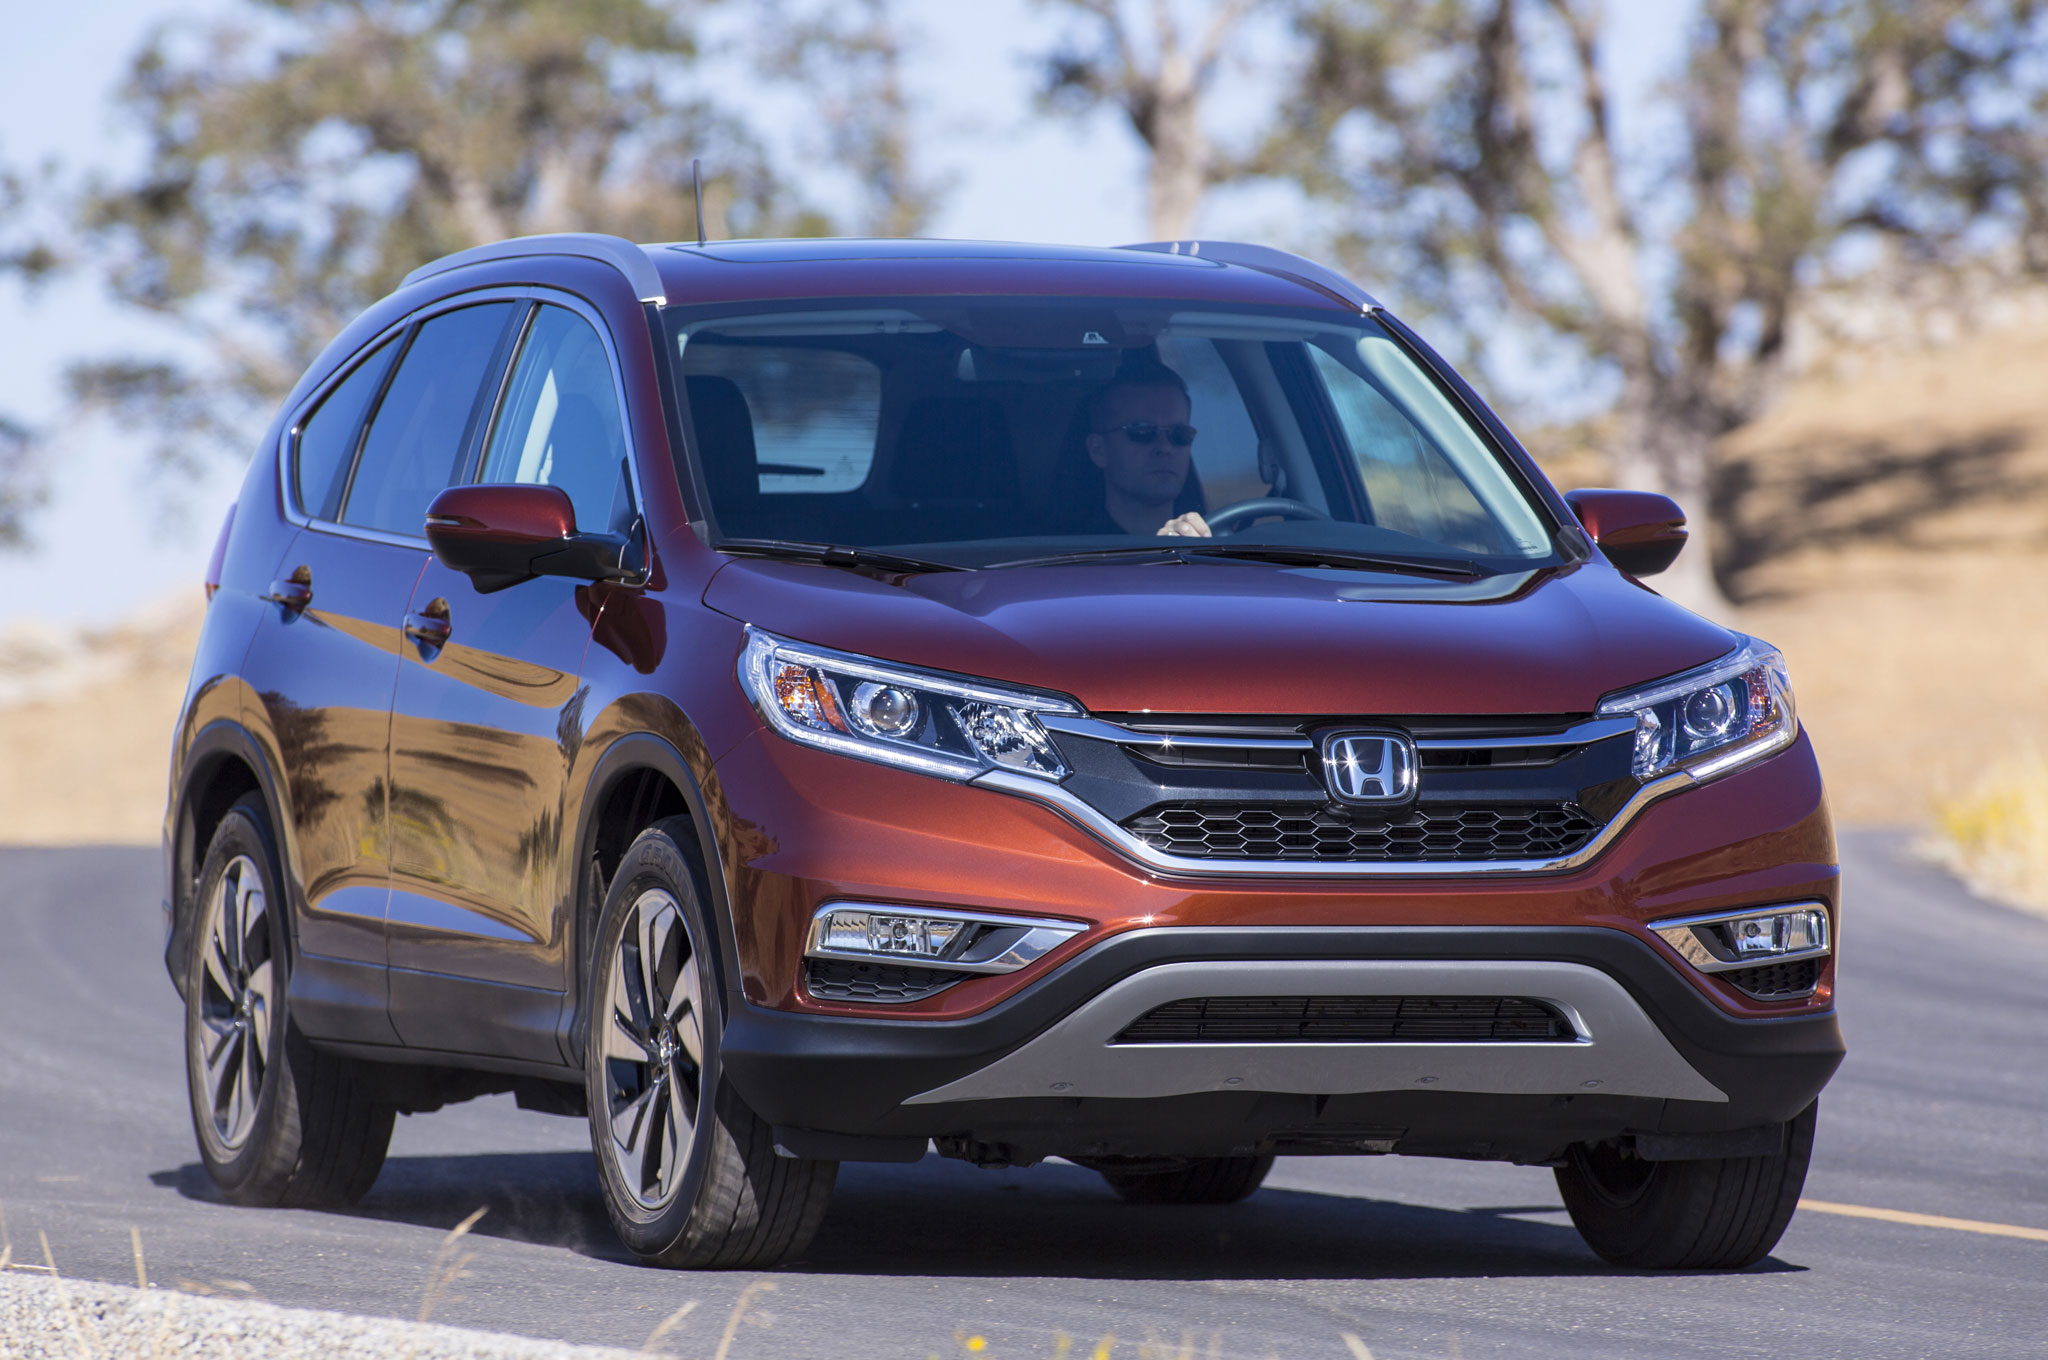 2015 honda crv front three quarter view 1